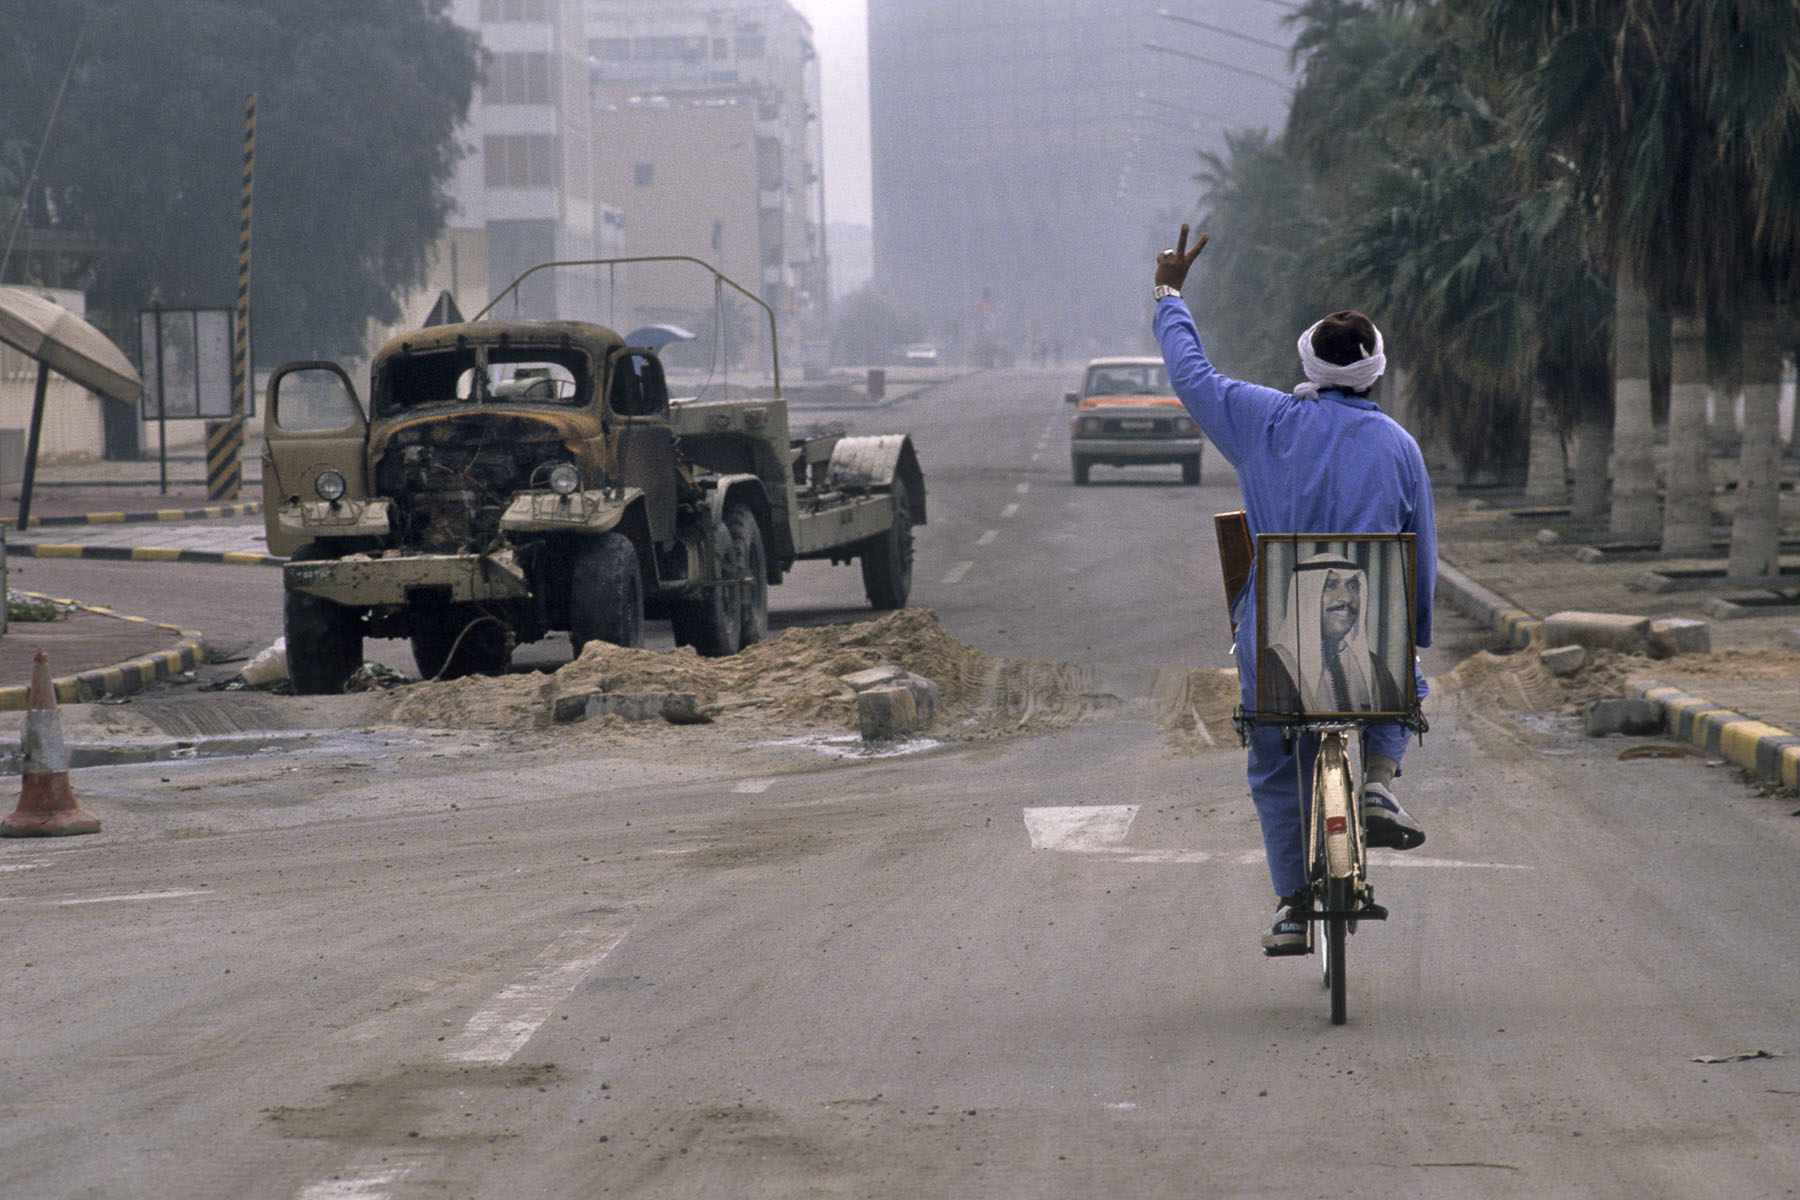 A man on his bicycle with the portrait of Sheik of Kuwait Saad Al-Abdullah Al-Salem Al-Sabah in February 1991